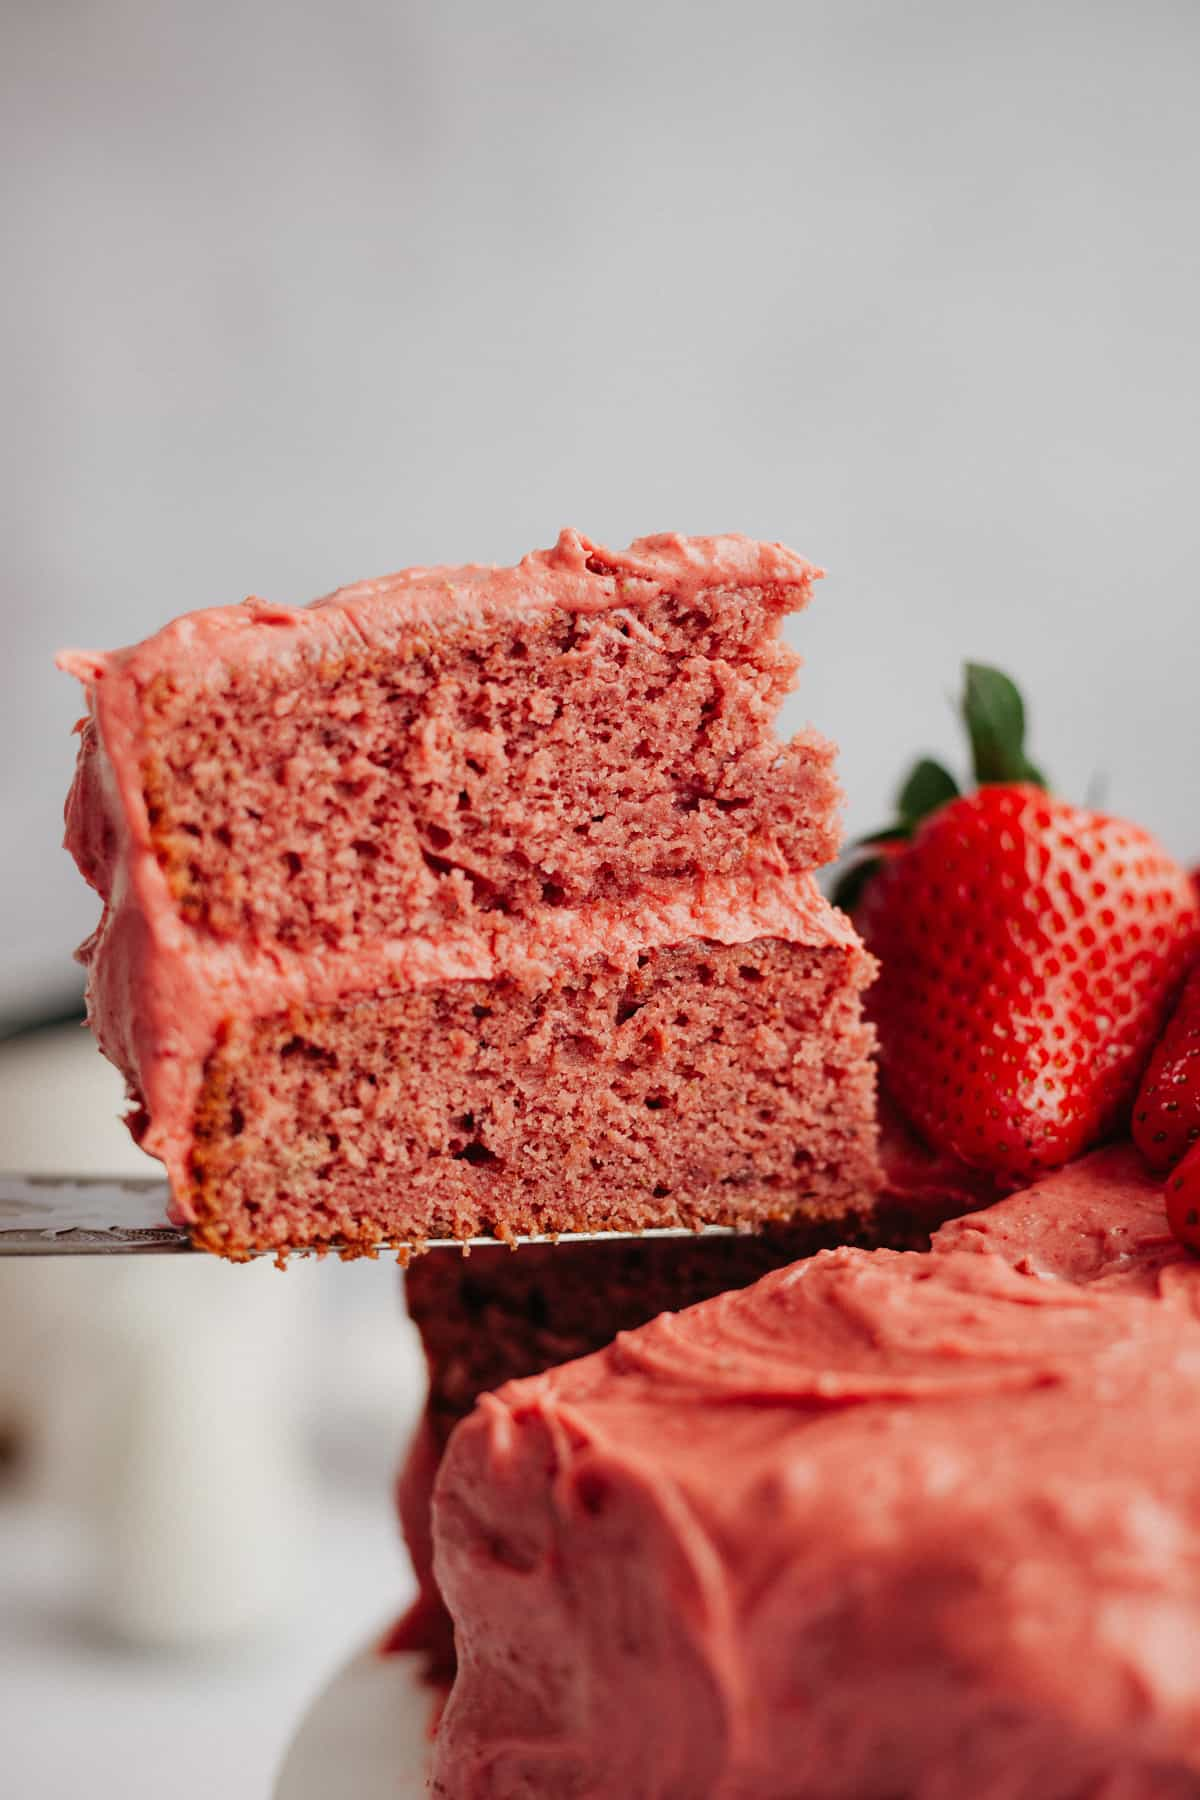 A close up of a slice of strawberry cake being lifted up